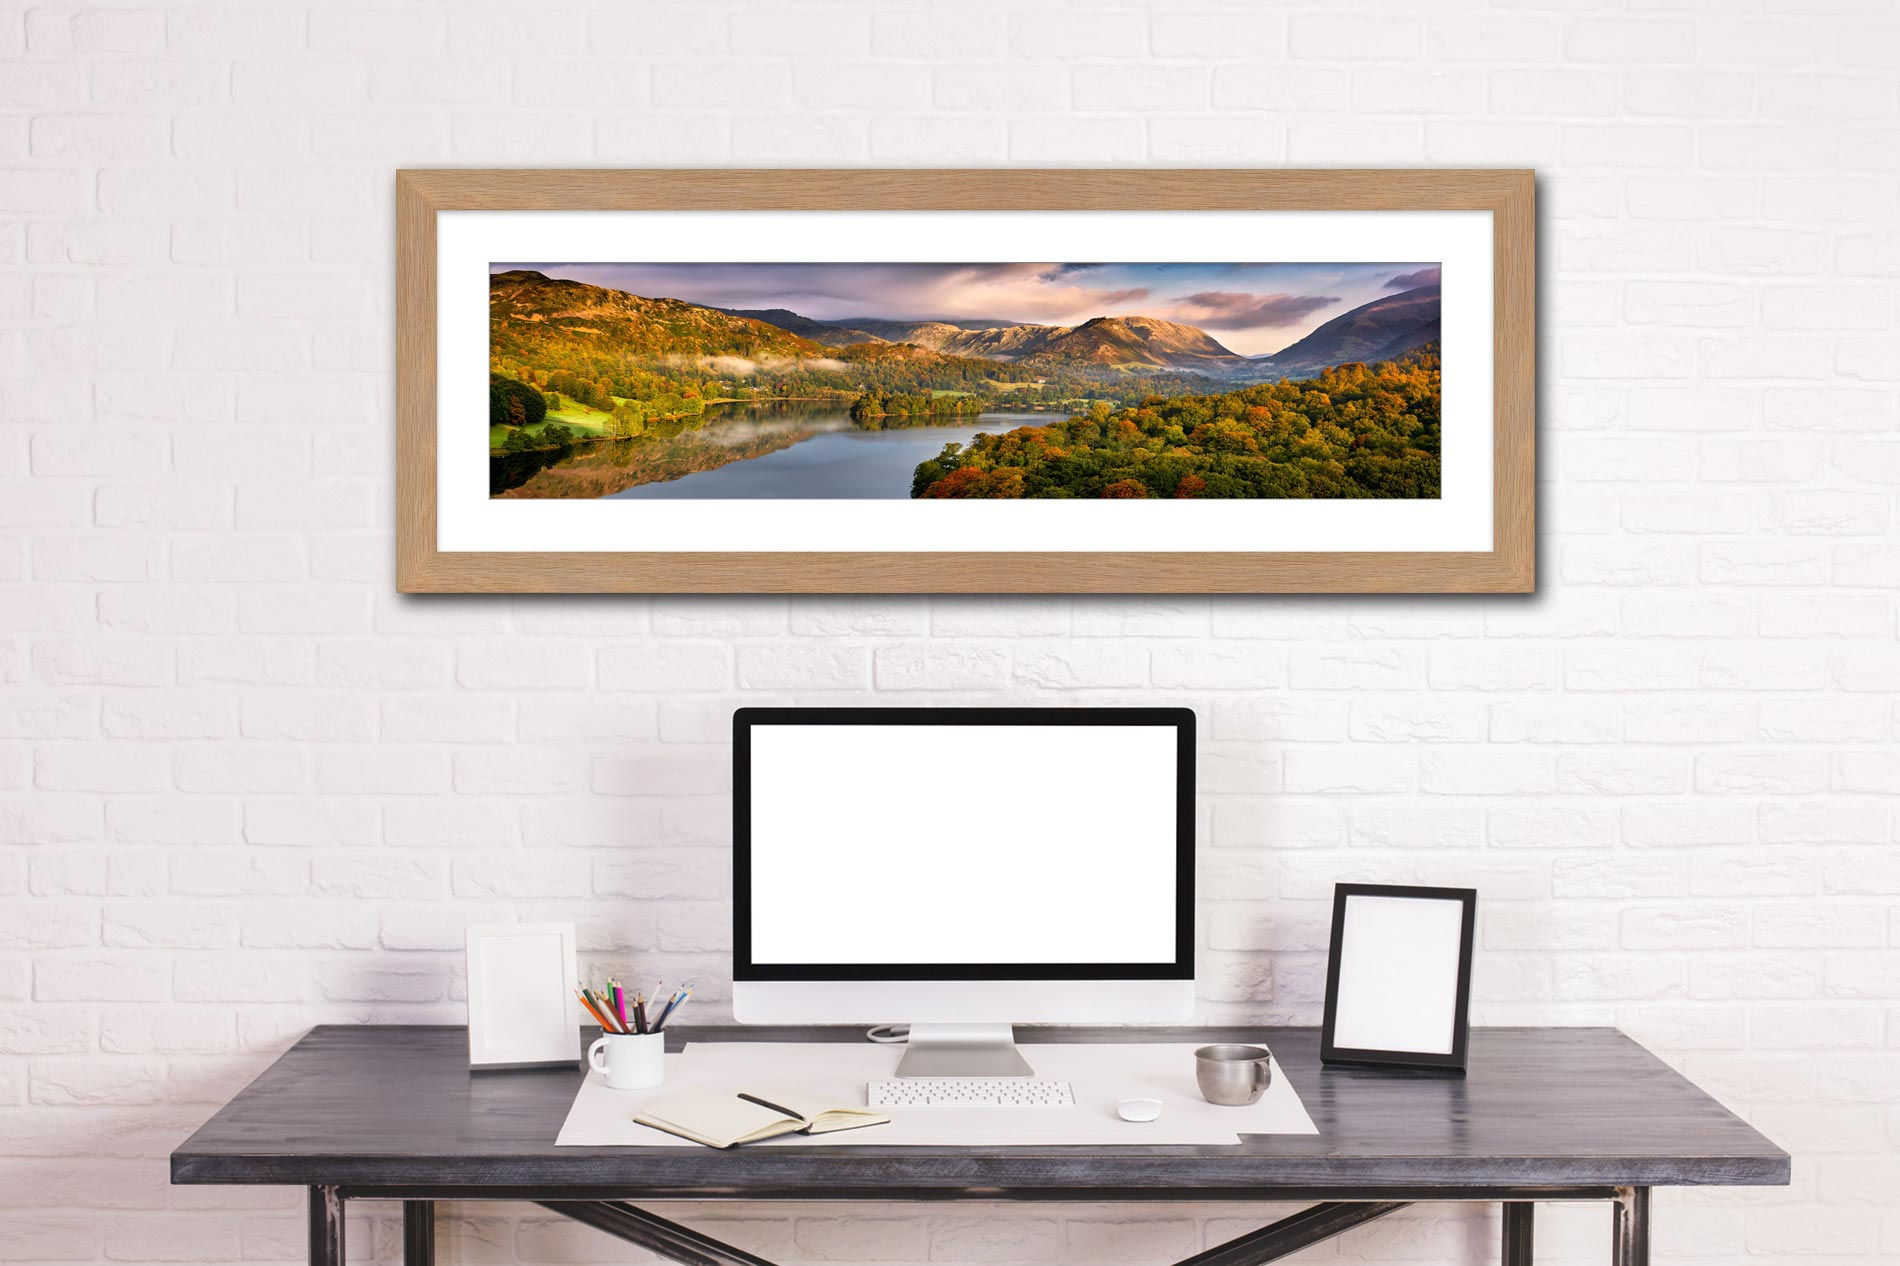 Grasmere Autumn Morning - Framed Print with Mount on Wall